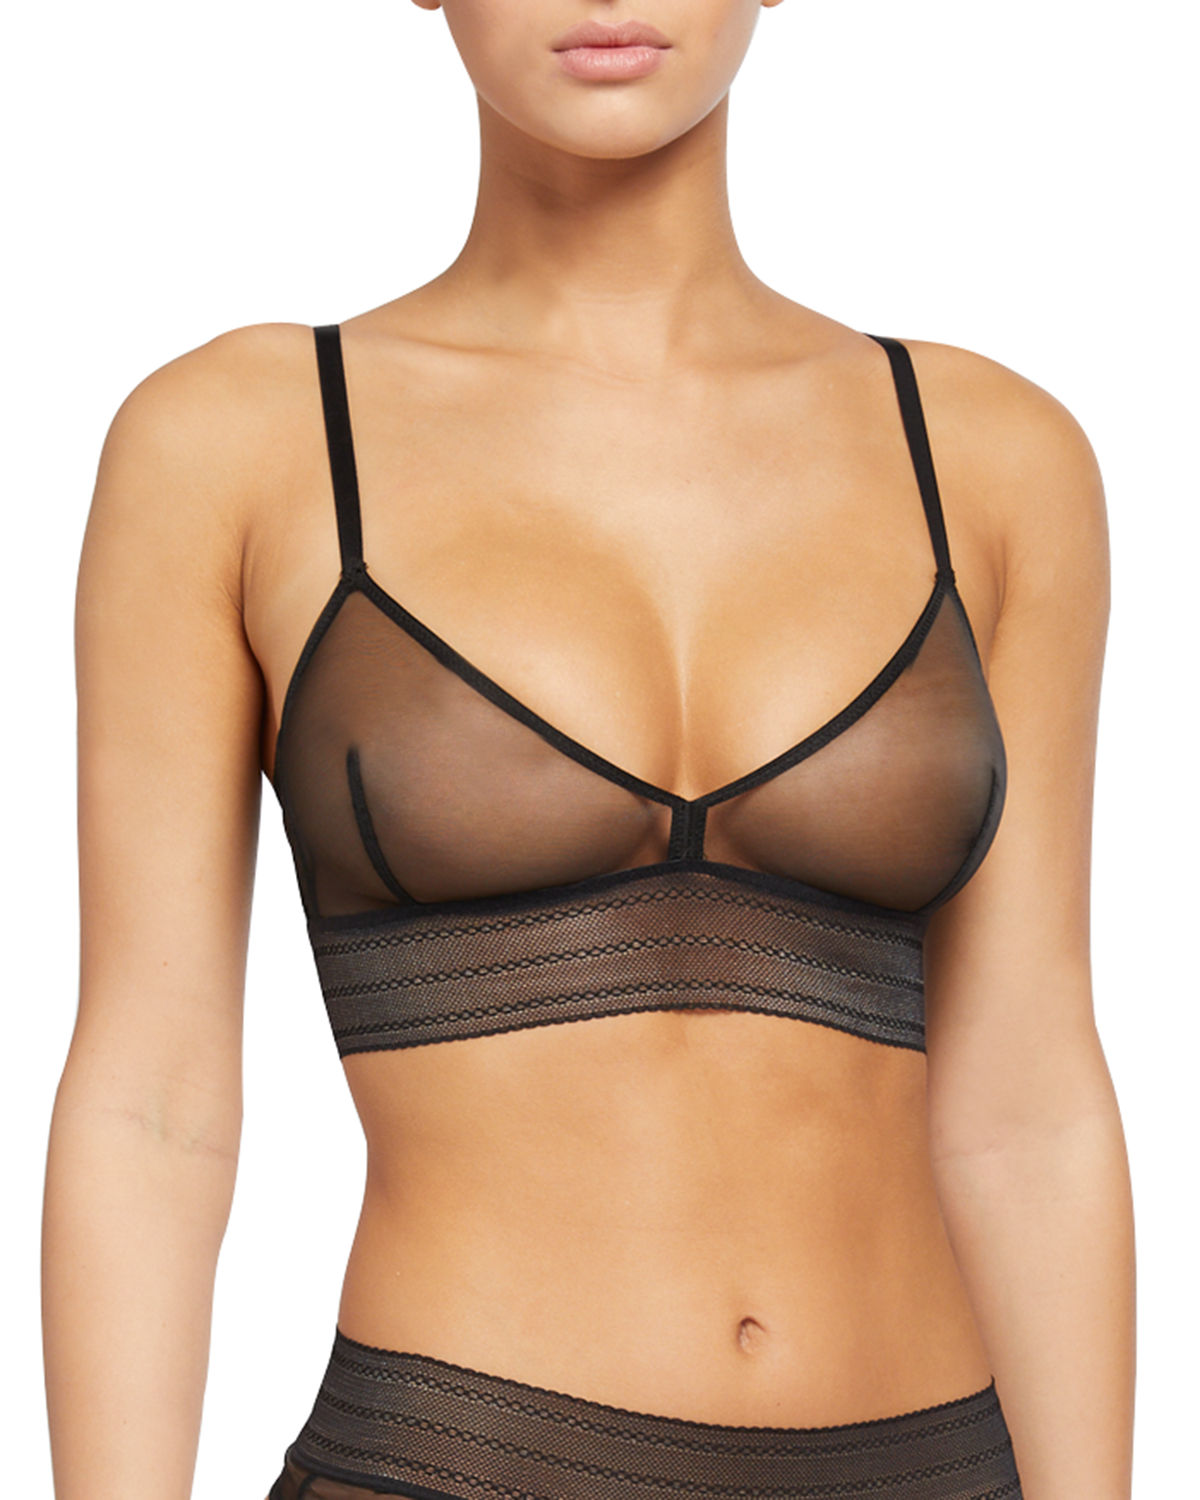 Else BARE SOFT TRIANGLE BRA